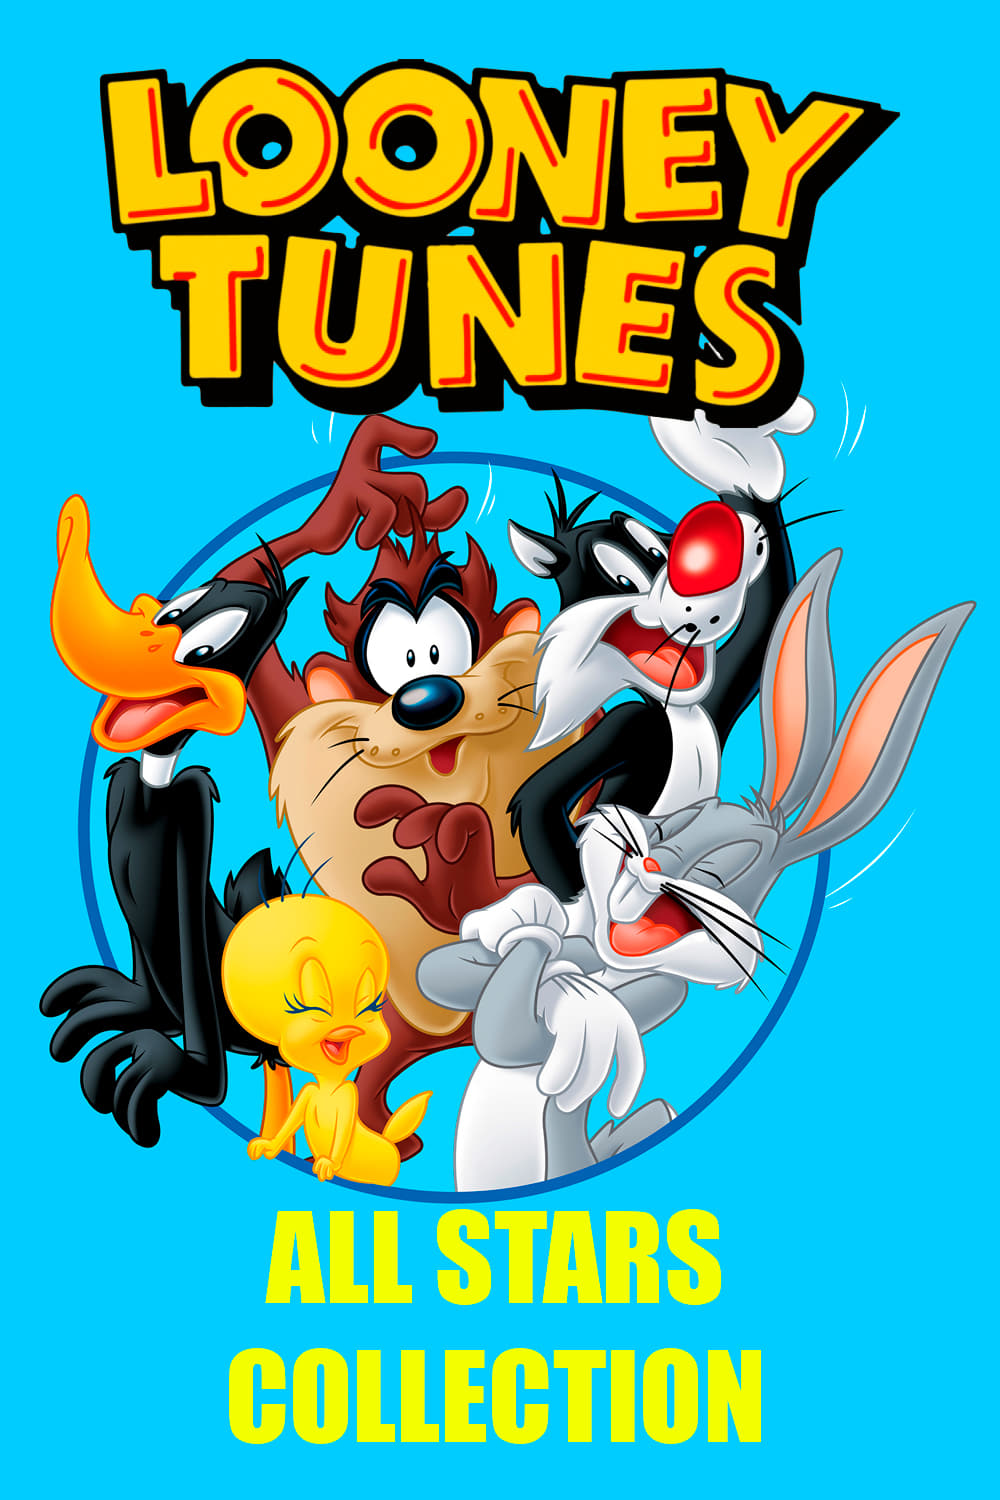 Looney Tunes All Stars Collection (1946)